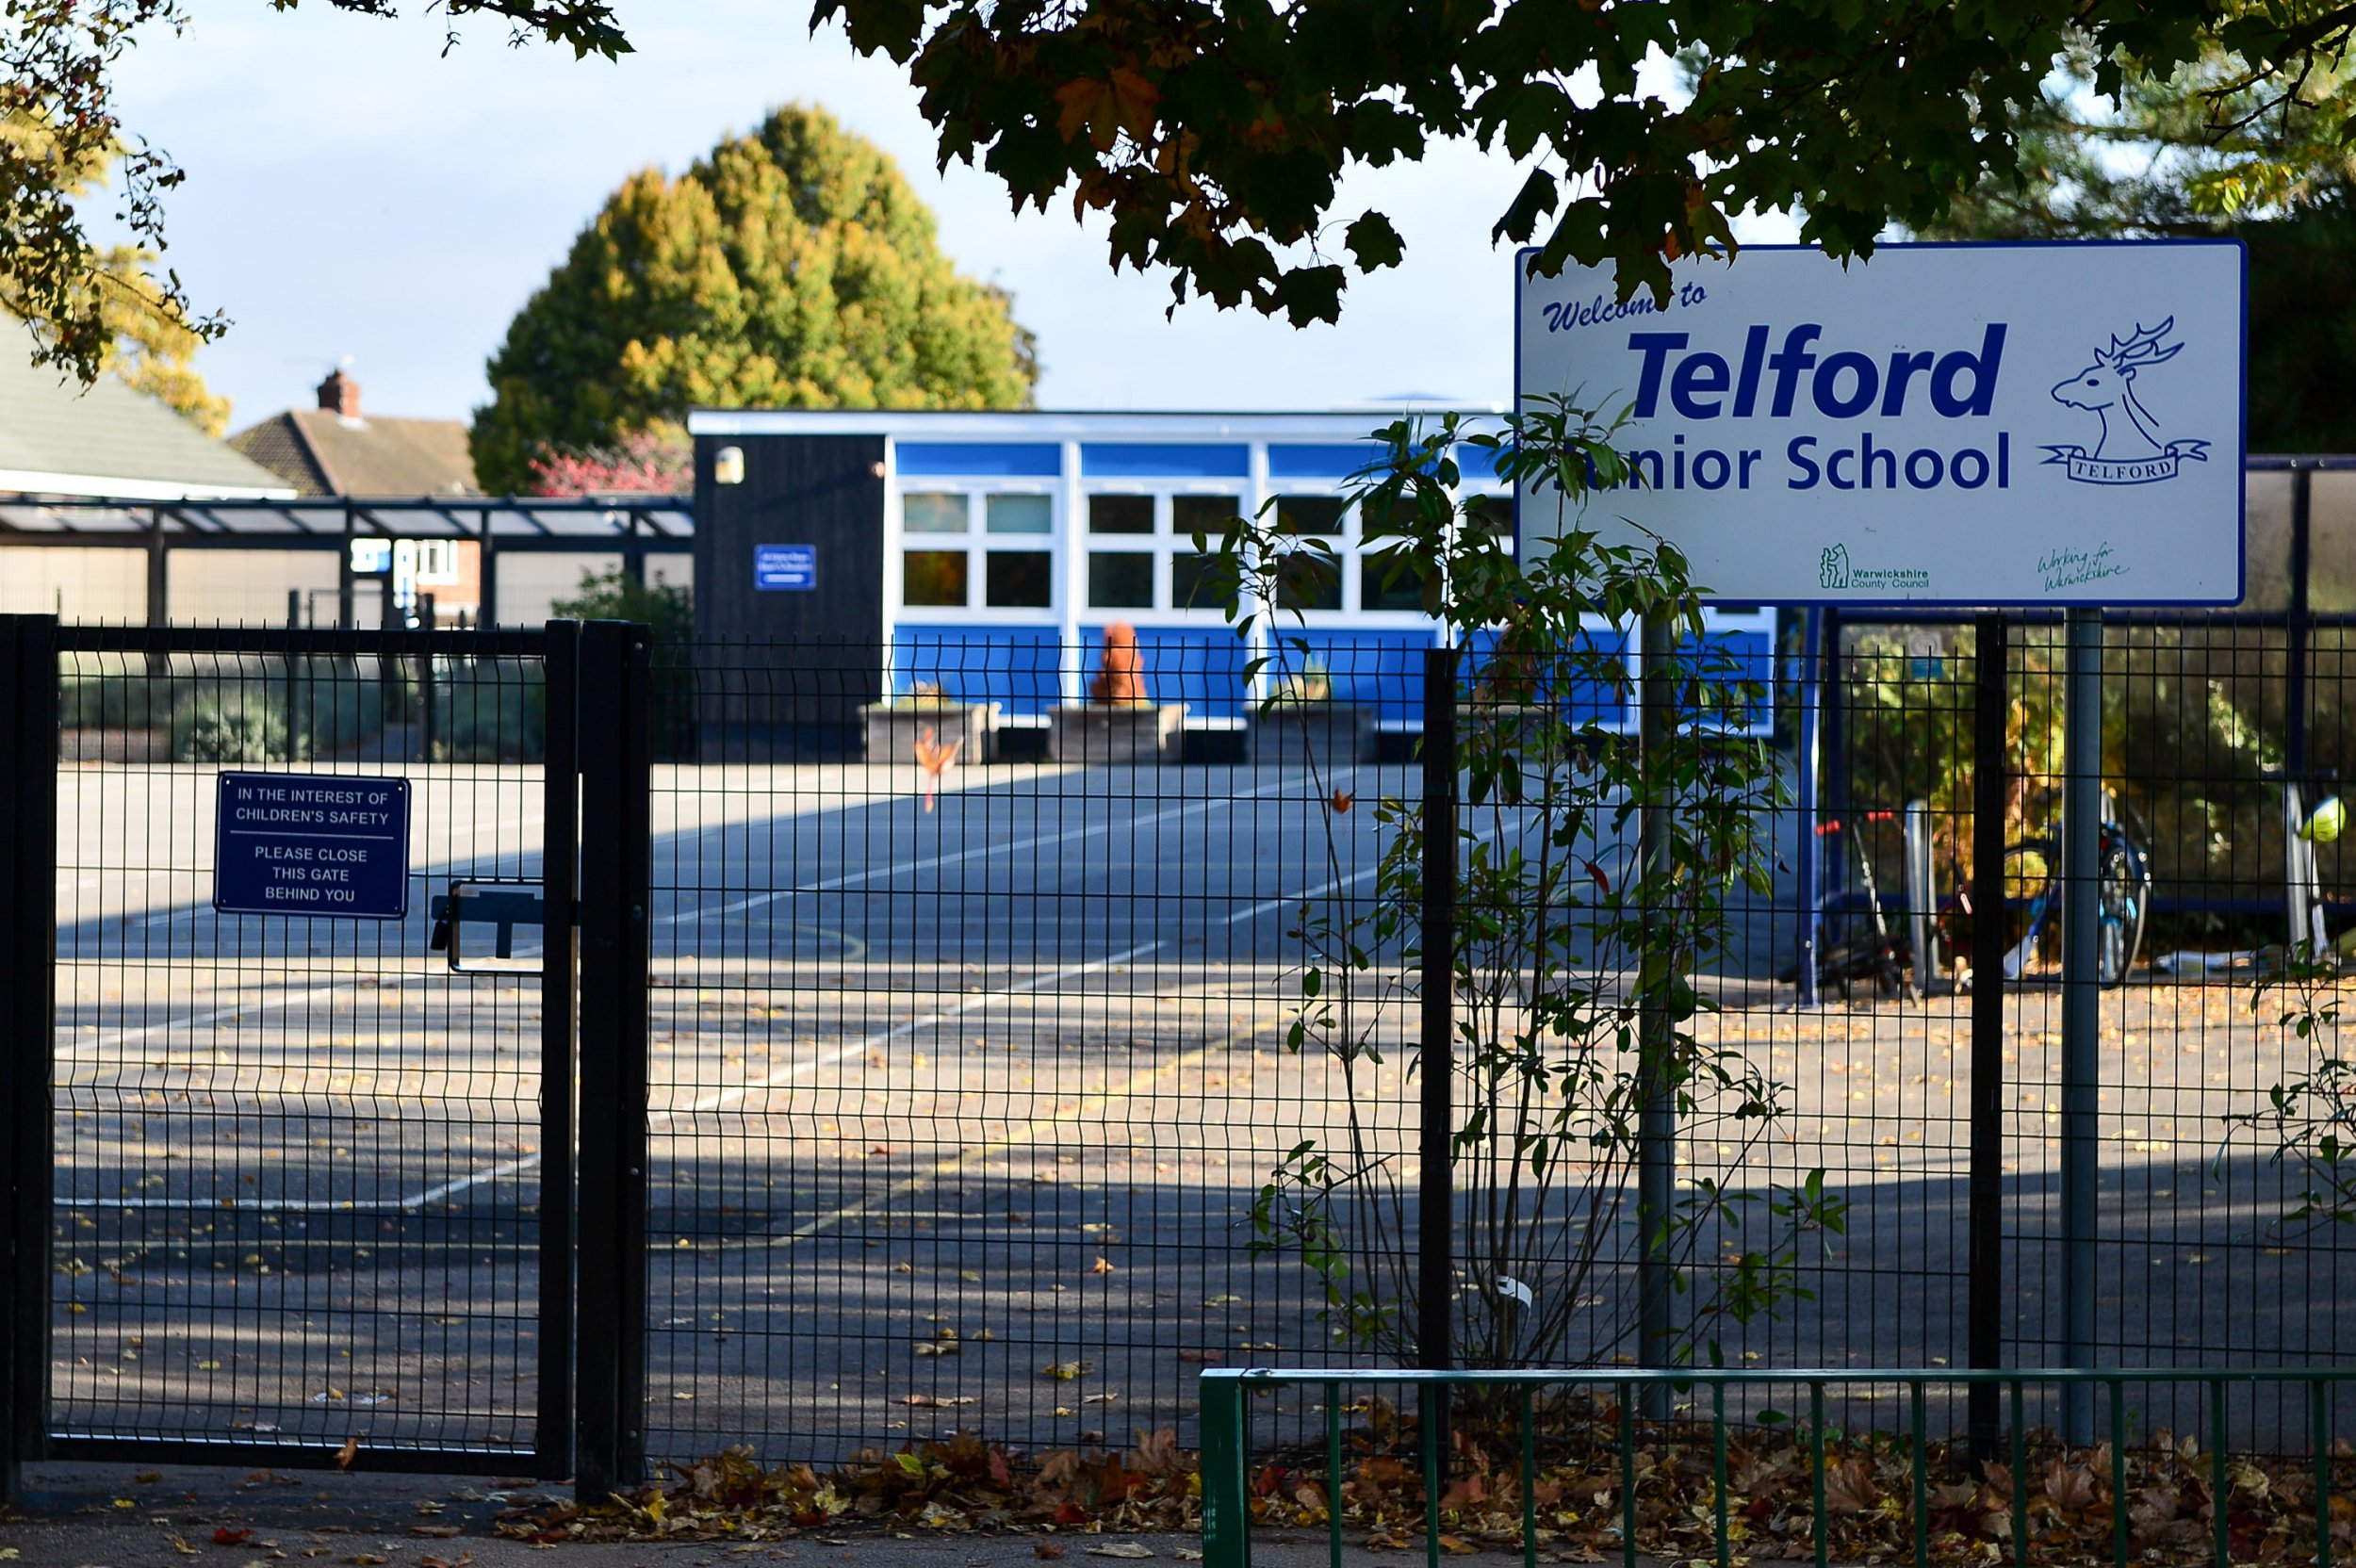 "GV of Telford Junior school in Cubbington, Warwickshire where the school are thinking of changing the uniform to hoodies. October 9 2018. Parents have blasted a junior school over plans to scrap the existing uniform and replace it with tracksuits and HOODIES. See SWNS story SWMDschool. School chiefs claim they want to help cash-strapped families save money by telling all parents to kit their children out in casual sportswear. If the plans are approved, pupils will wear blue-and-white tracksuit bottoms and a hoodie top emblazoned with the school crest. The current policy of pupils wearing black shoes will also be ditched in favour of non-branded white or black trainers. Parents have been asked to vote on the proposals - which have the backing of governors - which could come into force next year. Telford Junior School, in Leamington Spa, Warks., says the new uniform would consist of ""tracksuit bottoms, trainers, white sports socks, hoodie or zoodie in school colours with the school logo."" Last week headteacher Richard Siviter wrote to parents, saying: ""This uniform would be worn throughout the day, without the need to change into games kit for PE/games lessons."""